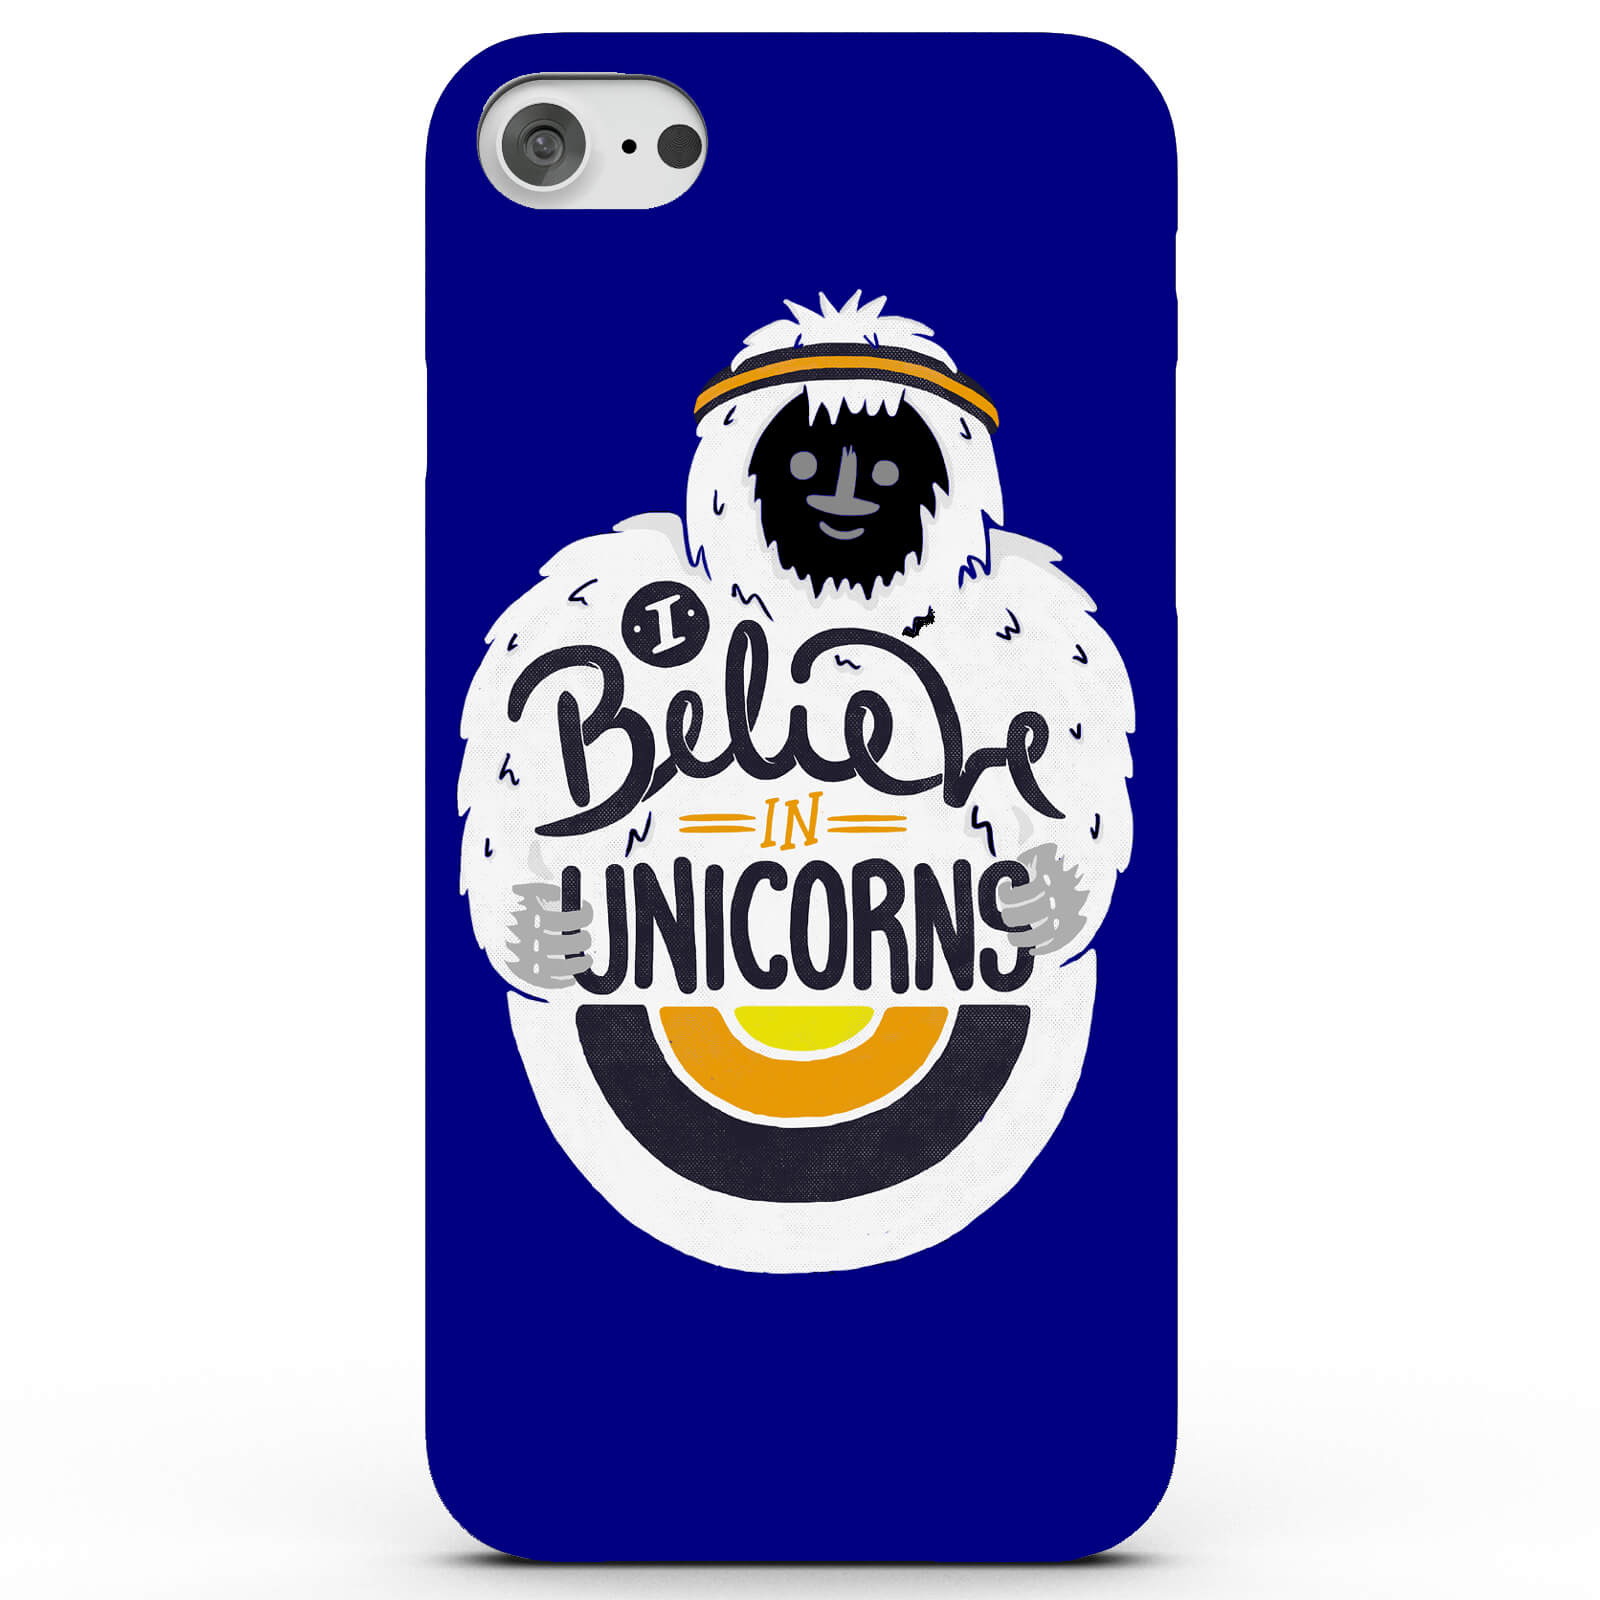 I Believe in Unicorns Phone Case for iPhone & Android - 4 Colours